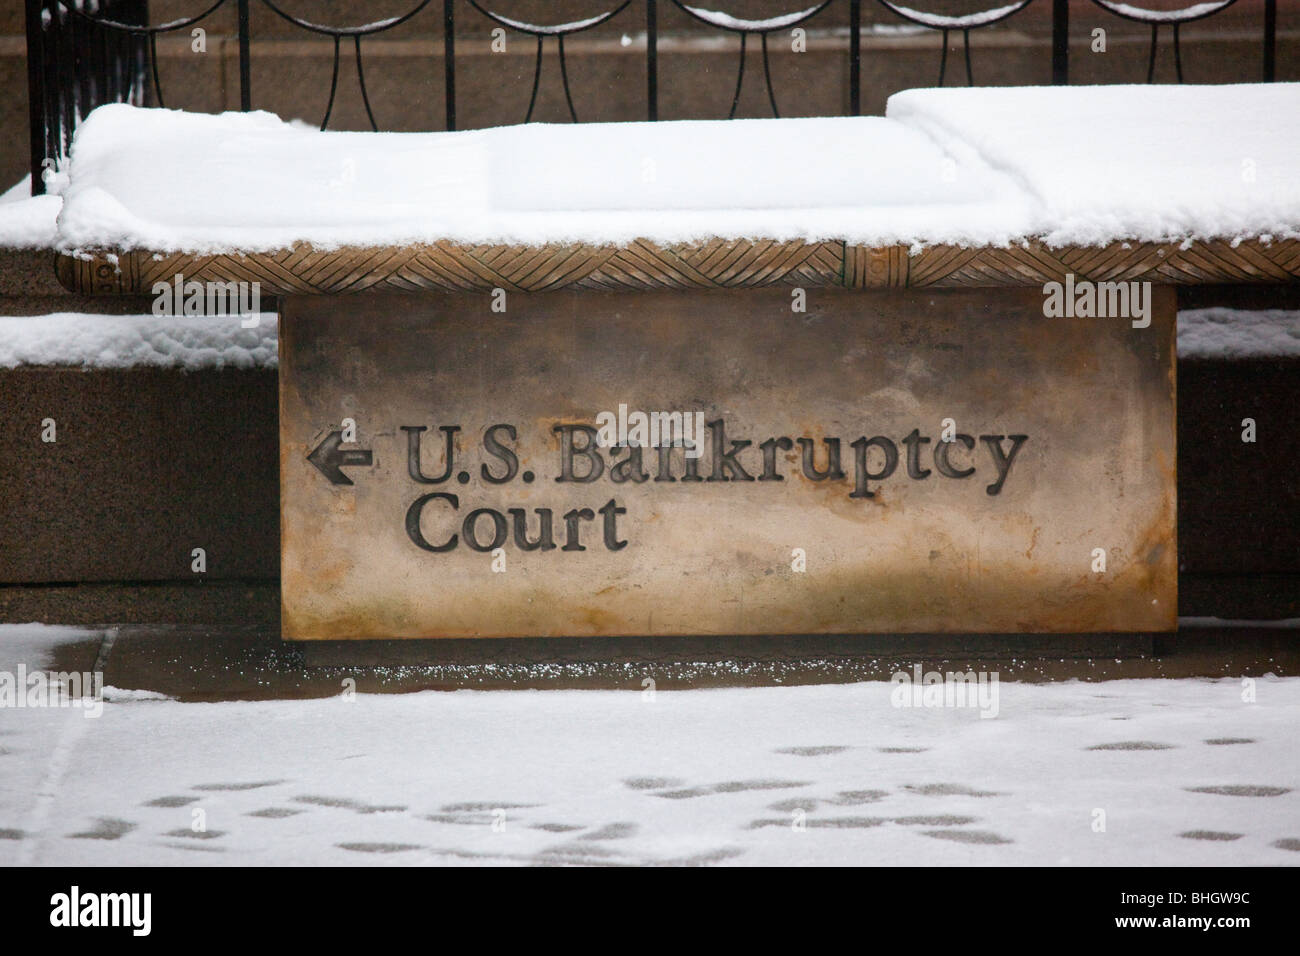 US Bankruptcy Court in lower Manhattan, New York City - Stock Image